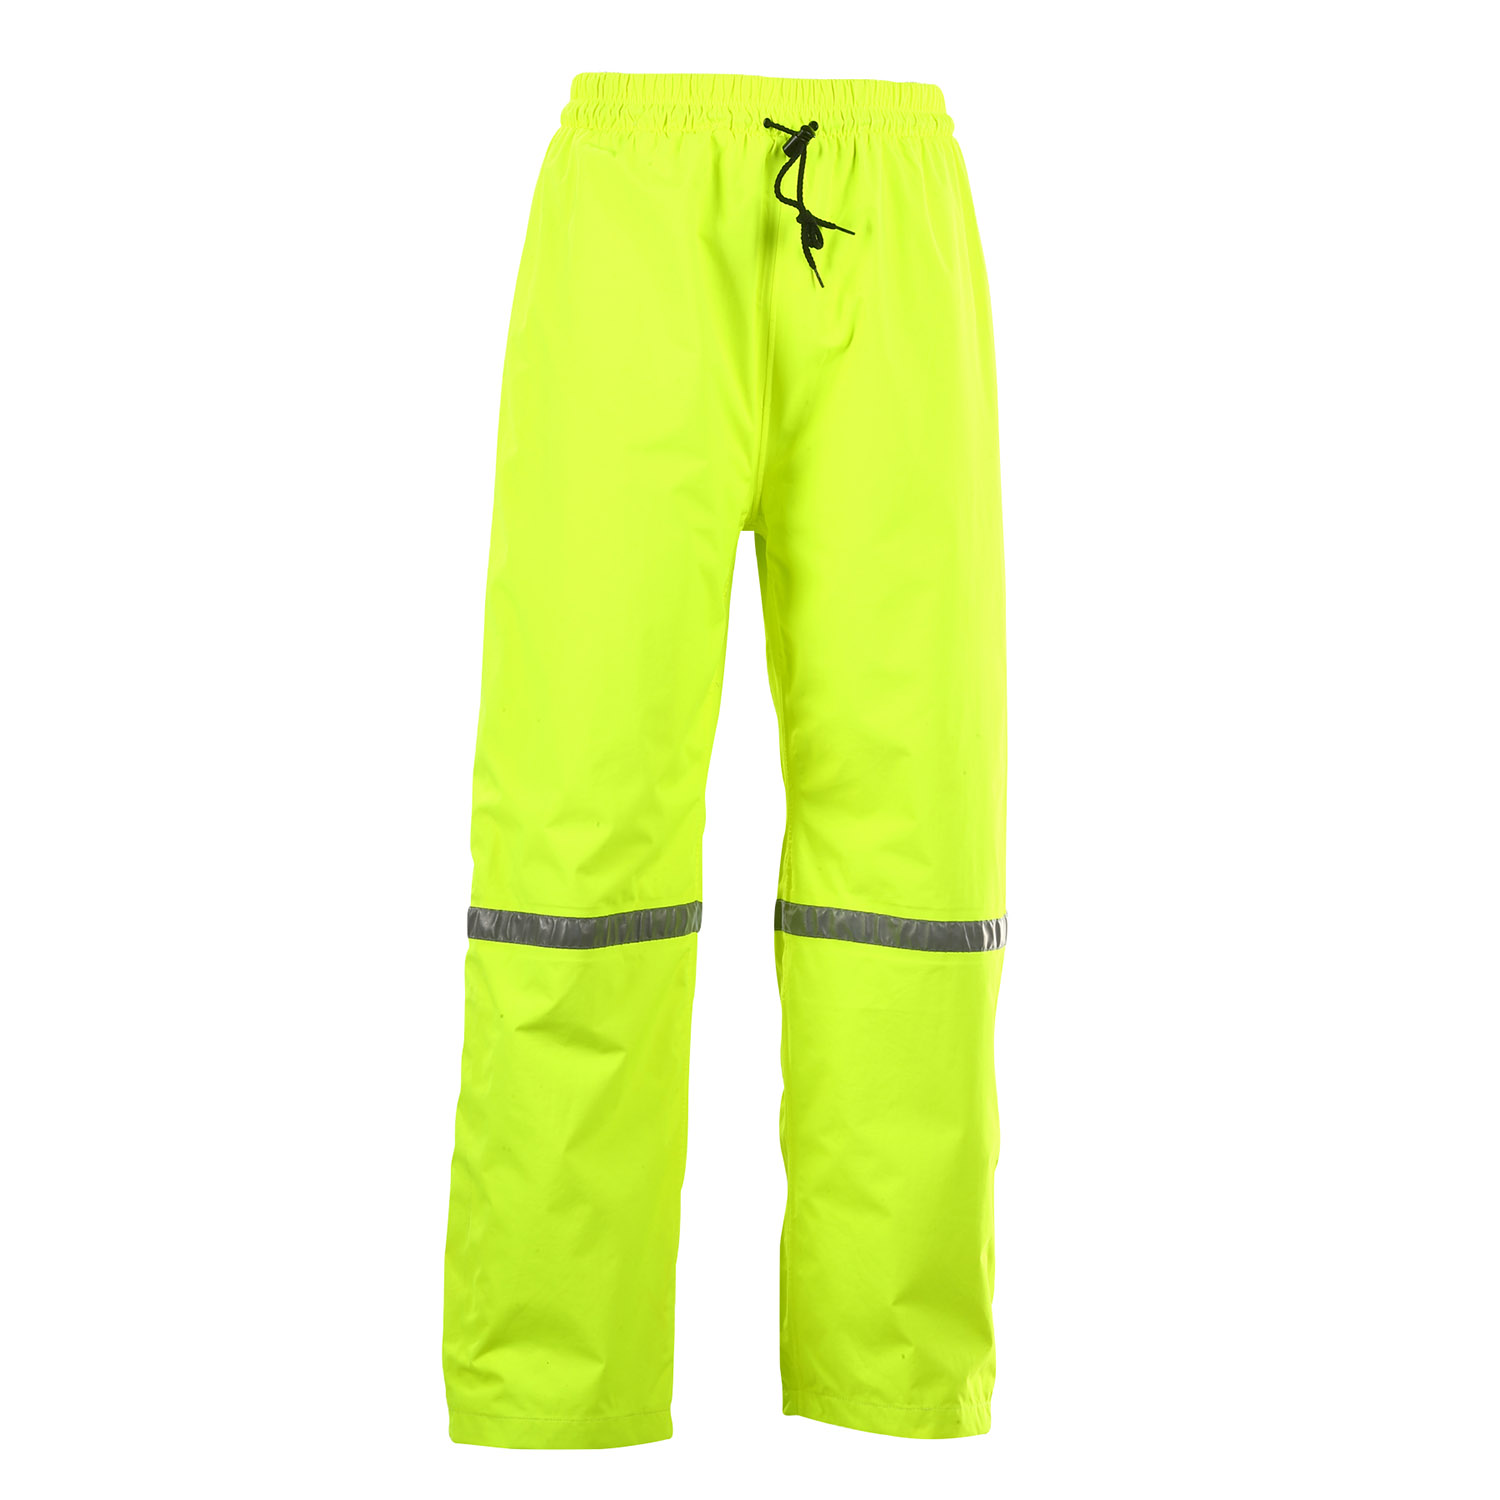 Solar 1 Waterproof And Breathable Rain Pants